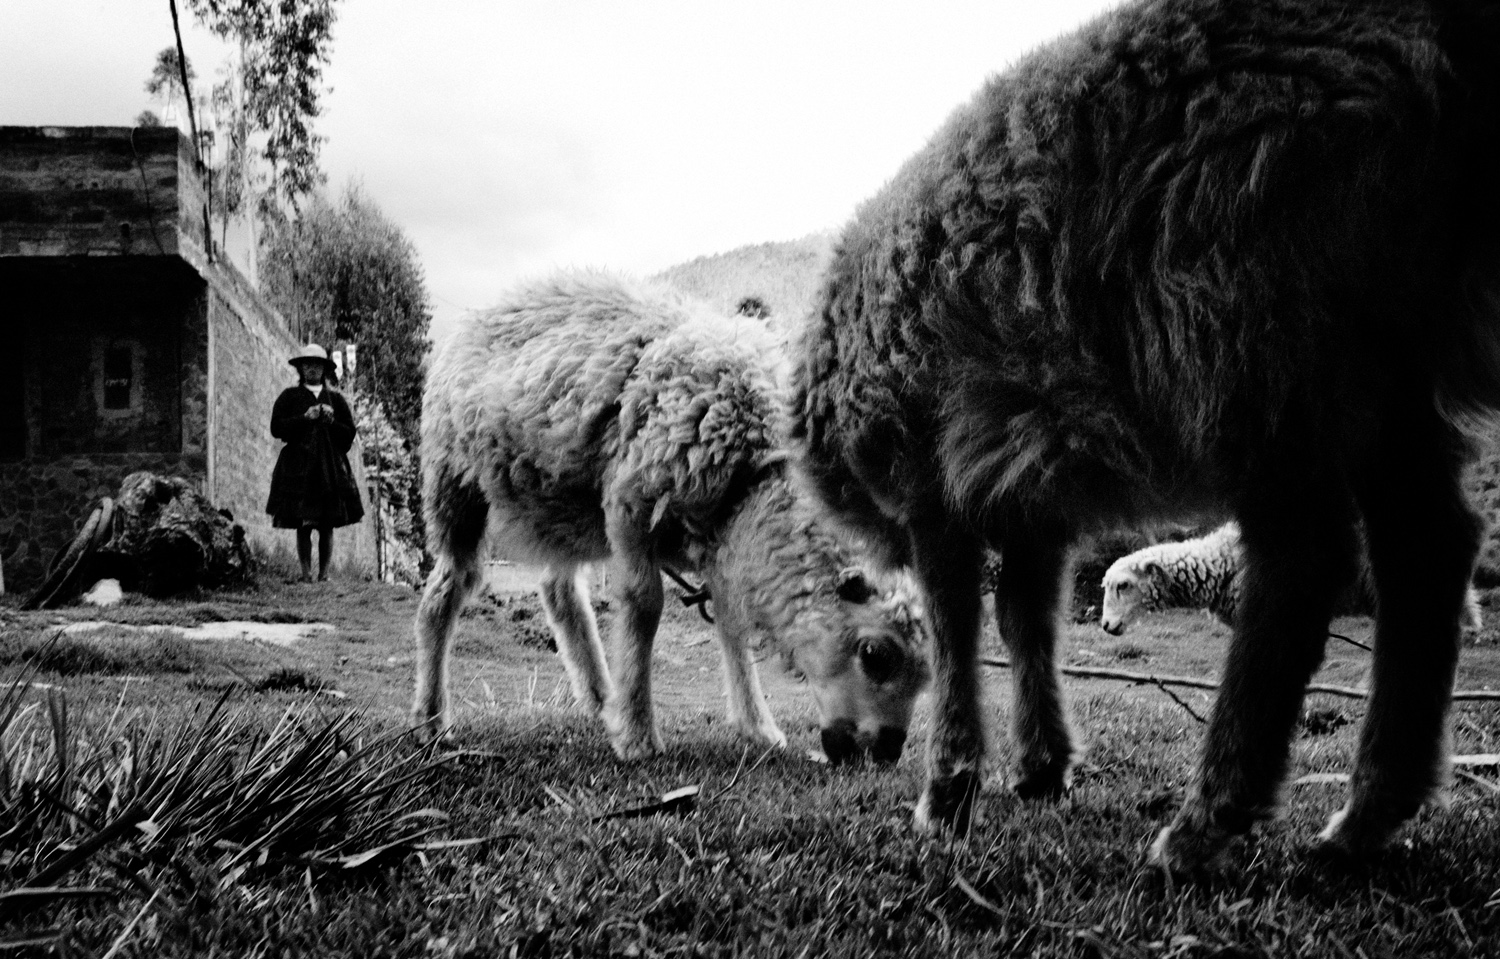 Labariana Mendoza, stands watch over her and her sister's sheep while also knitting a scarf, in a pasture near her house. Hualhaus is a small town northwest of Huancayo in the Central Highlands that is known for its fine weavings. Life here exists has it has for centuries. The people raise their own sheep and alpaca, hand-spin their own threads, and make their own natural dyes from grinding roots leaves flowers, fruits and minerals, much as it was done by the pre-Incan cultures of the Nasca and Paracas. Many of the towns in the Mantaro Valley are known for specific crafts. They have begun to market themselves to raise tourism and bring money directly to the towns, rather than having to send their wares of to markets and pay much of their profits to middlemen.